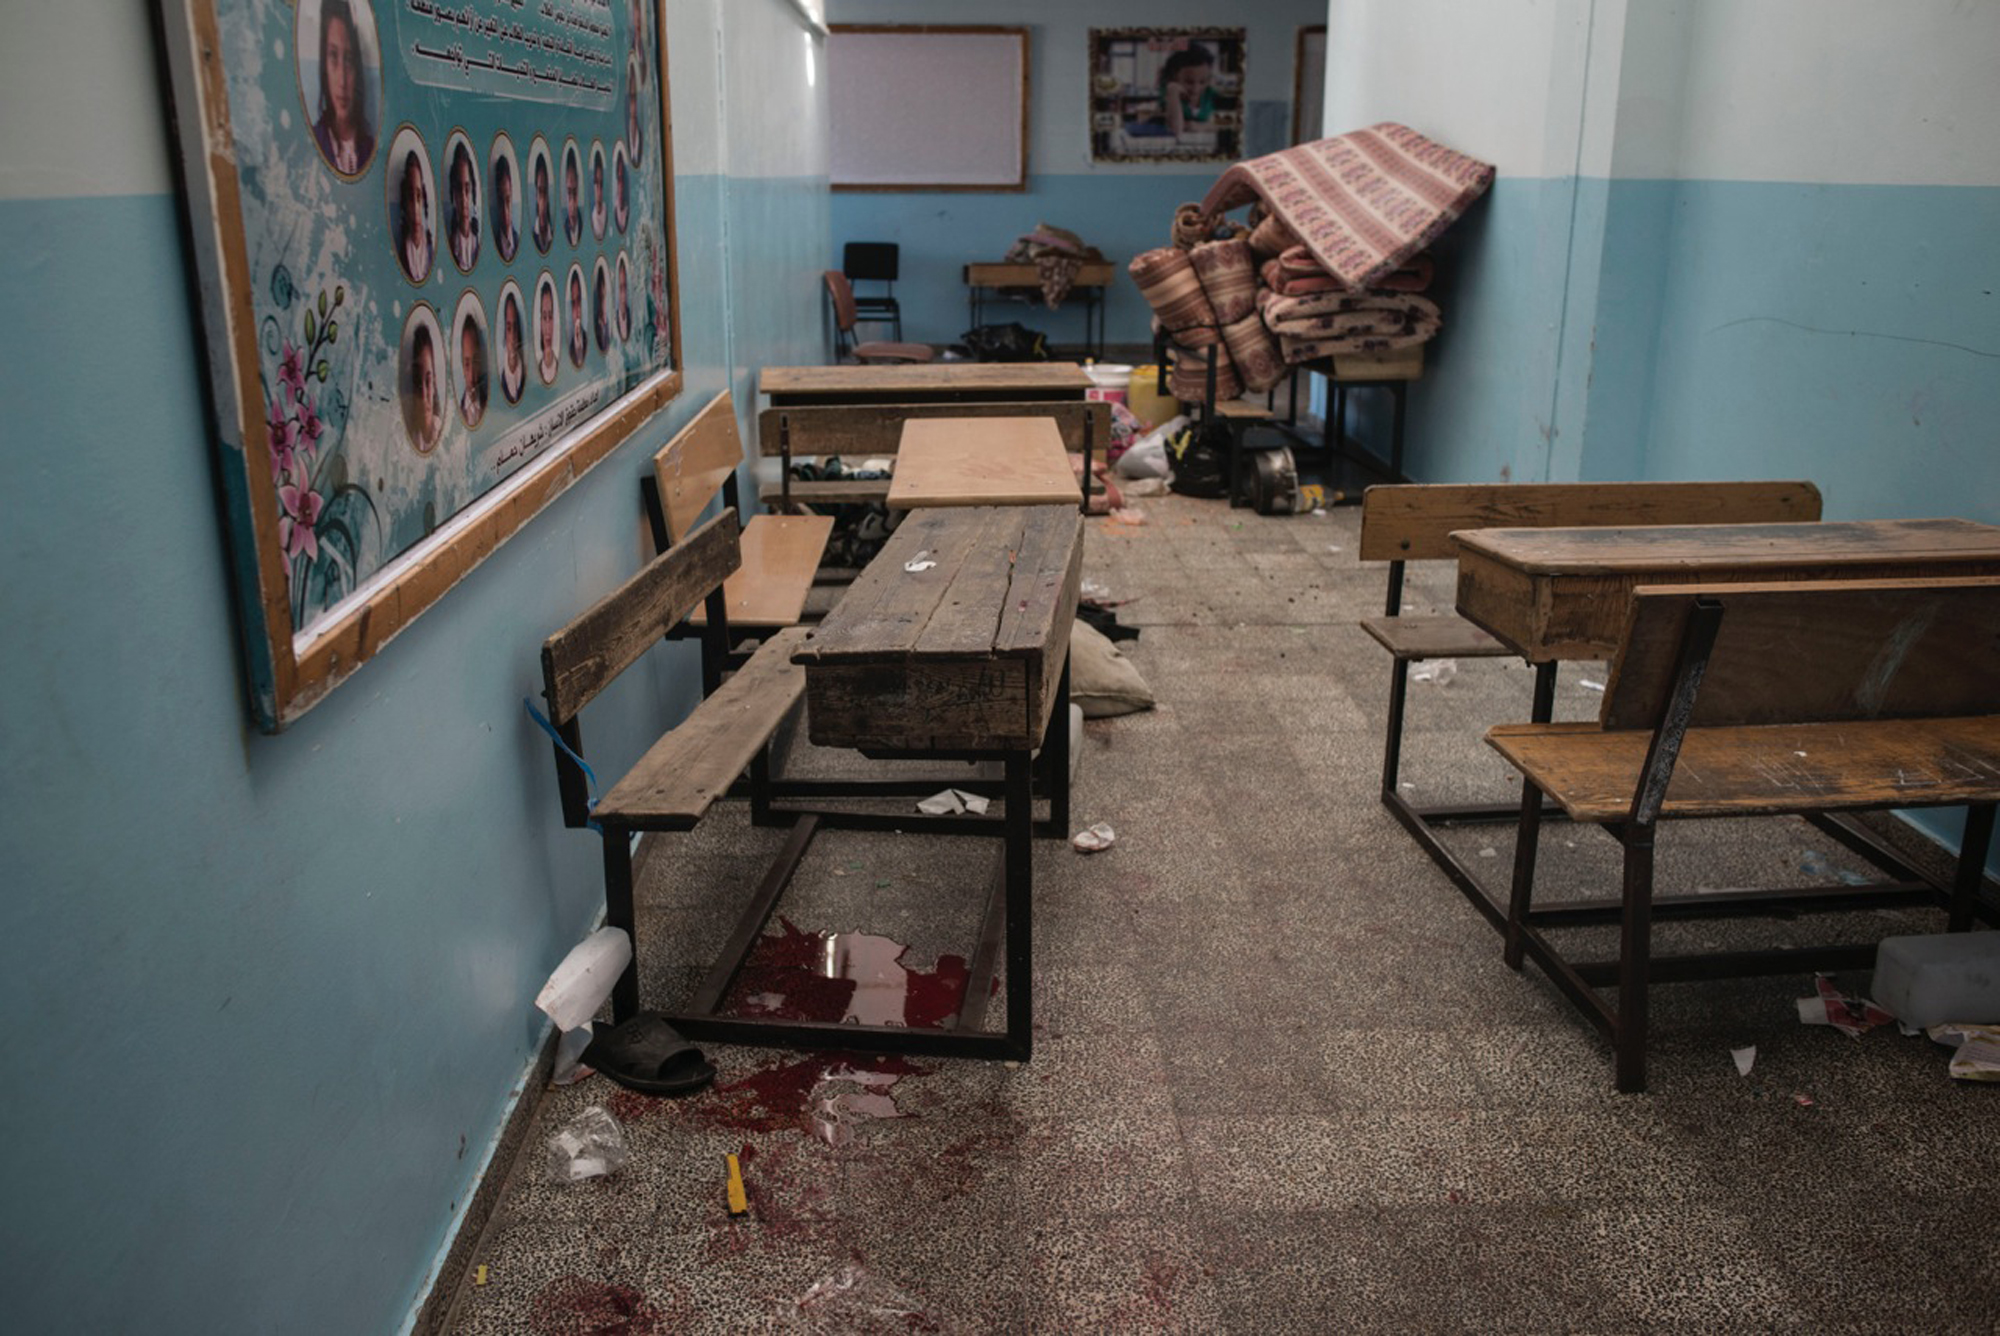 Blood stains of displaced Palestinians are seen inside the UNRWA school in Beit Hanoun after it had been hit, Gaza Strip, July 24, 2014.